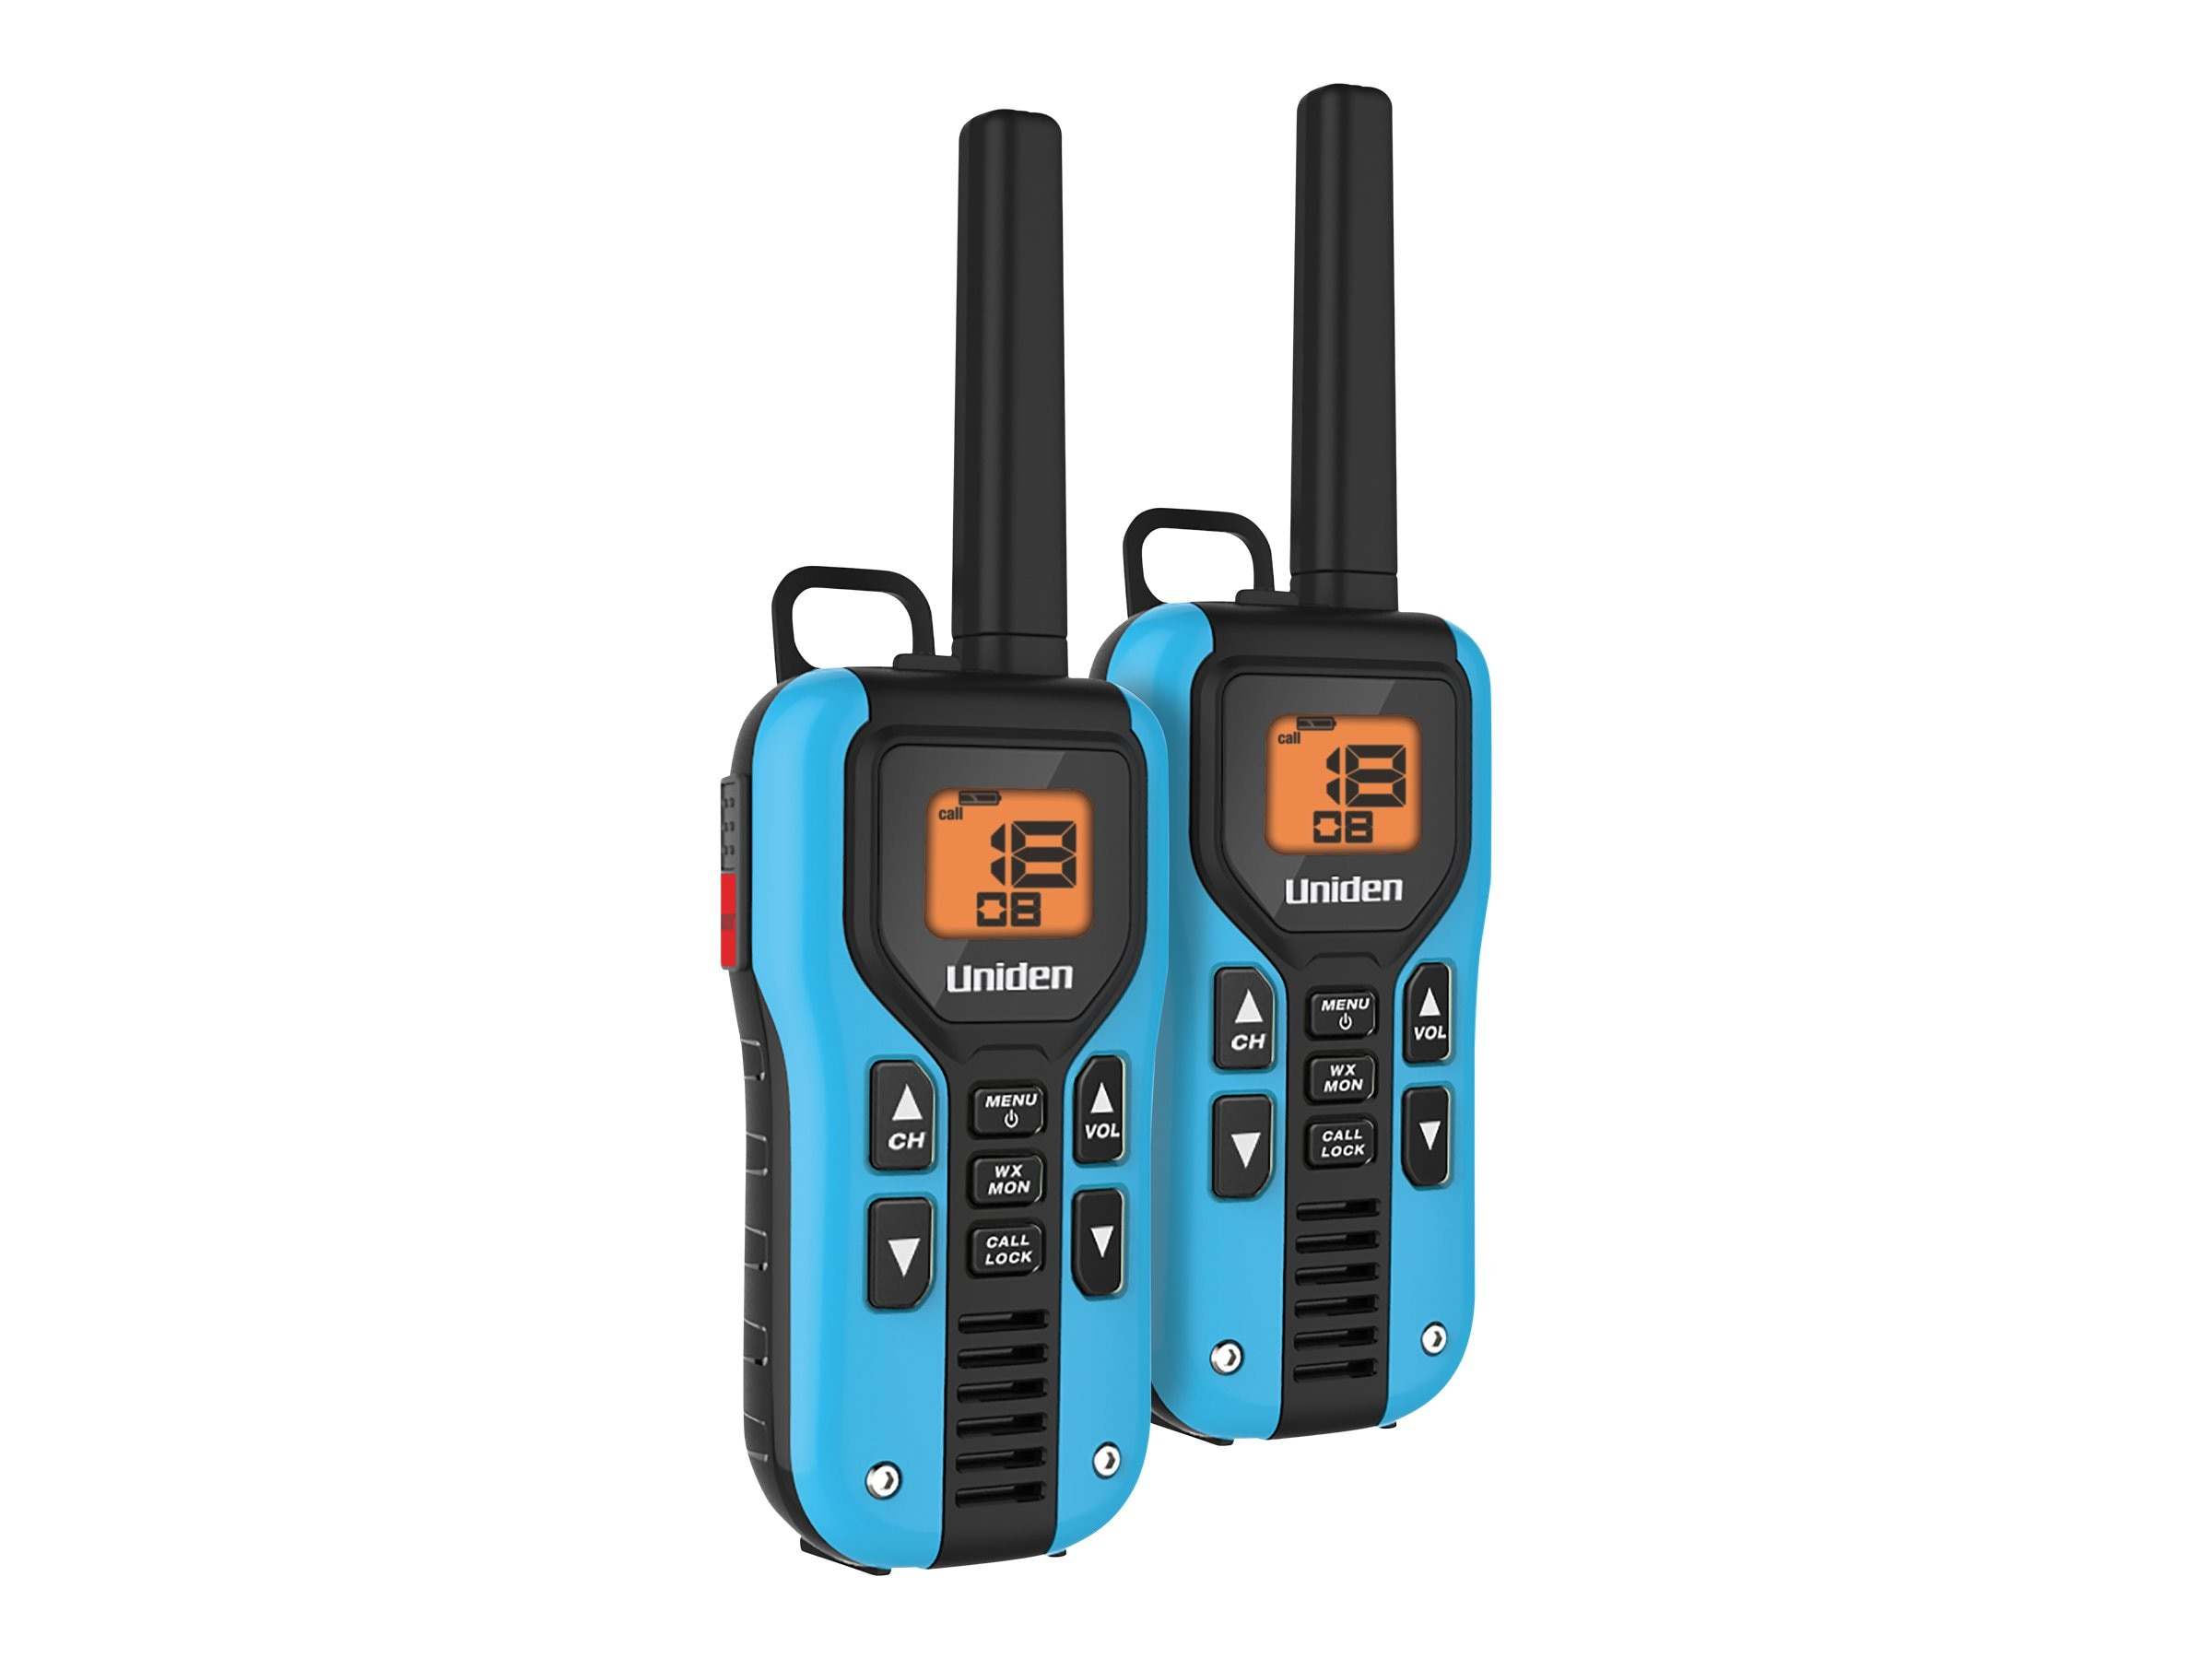 Uniden GMRS FRS 40-Mile Radio w  Privacy Codes, Weather Alerts & Headsets